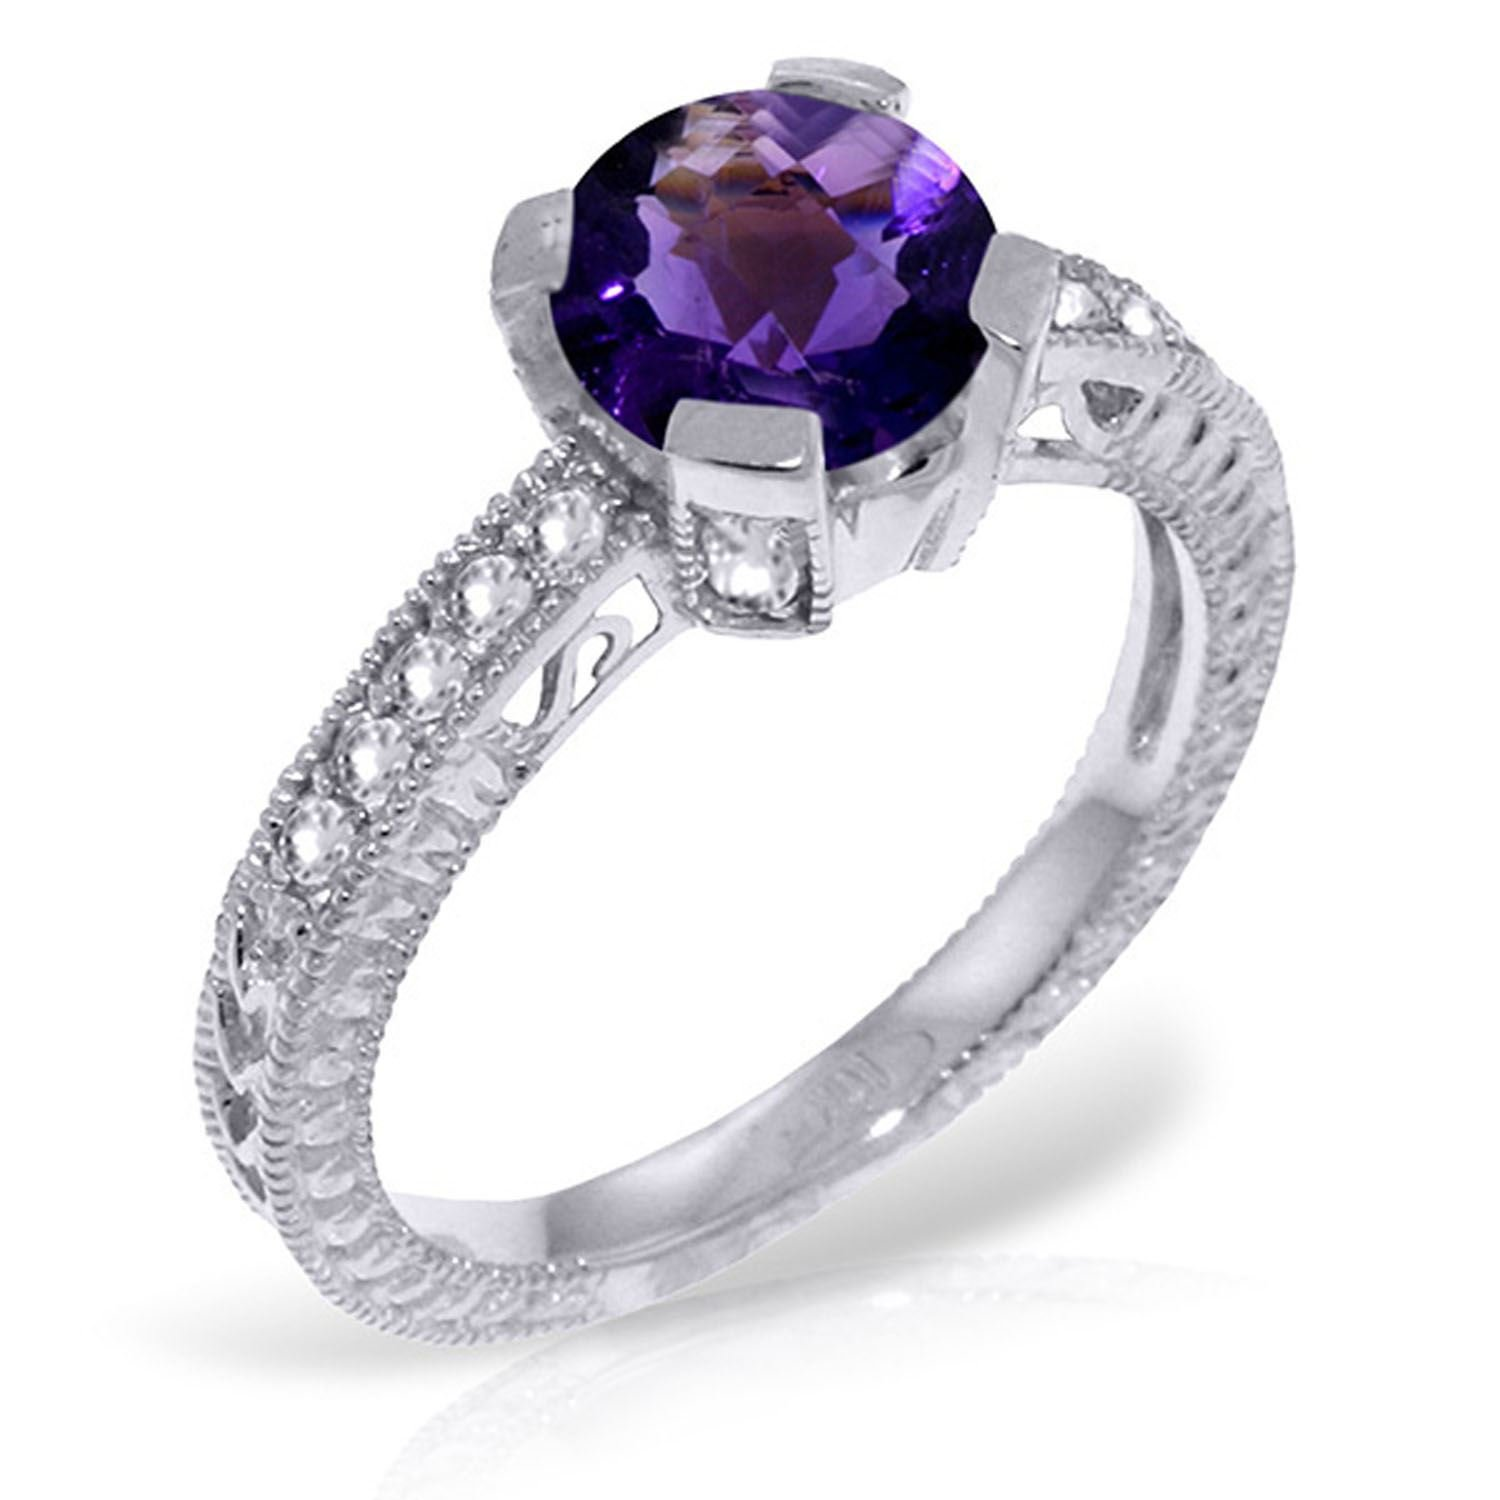 ALARRI 1.8 Carat 14K Solid White Gold Gesture Of Love Amethyst Diamond Ring Ring Size 7.5